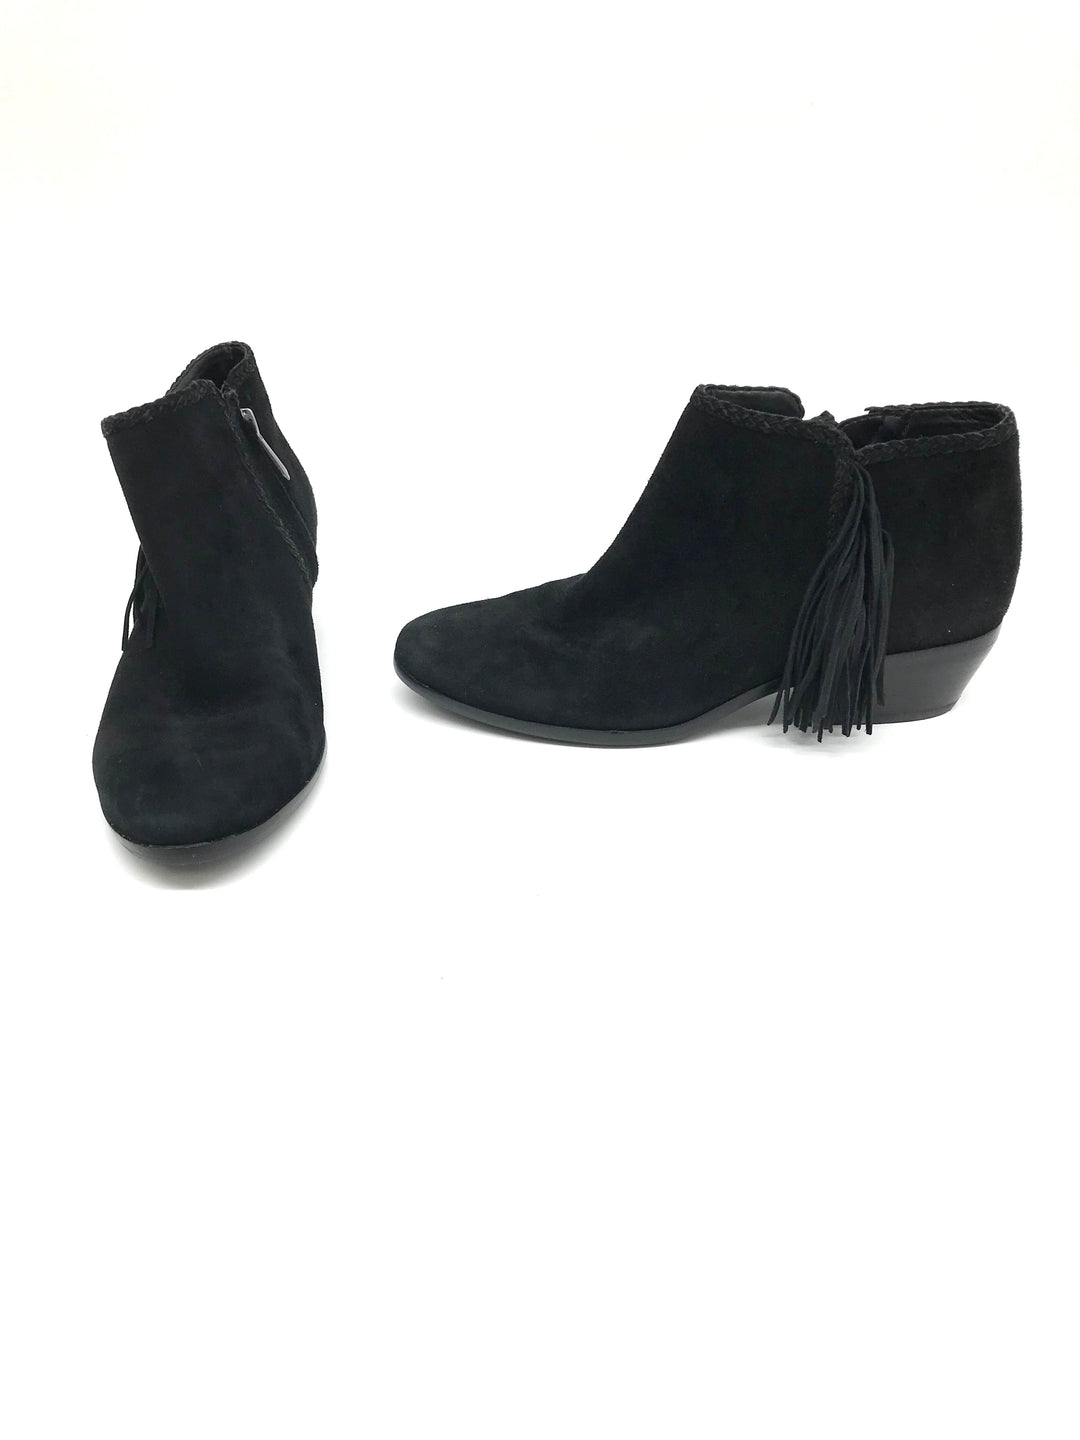 Primary Photo - BRAND: SAM EDELMAN <BR>STYLE: BOOTS ANKLE <BR>COLOR: BLACK <BR>SIZE: 6 <BR>SKU: 262-26275-71578<BR>AS IS <BR>